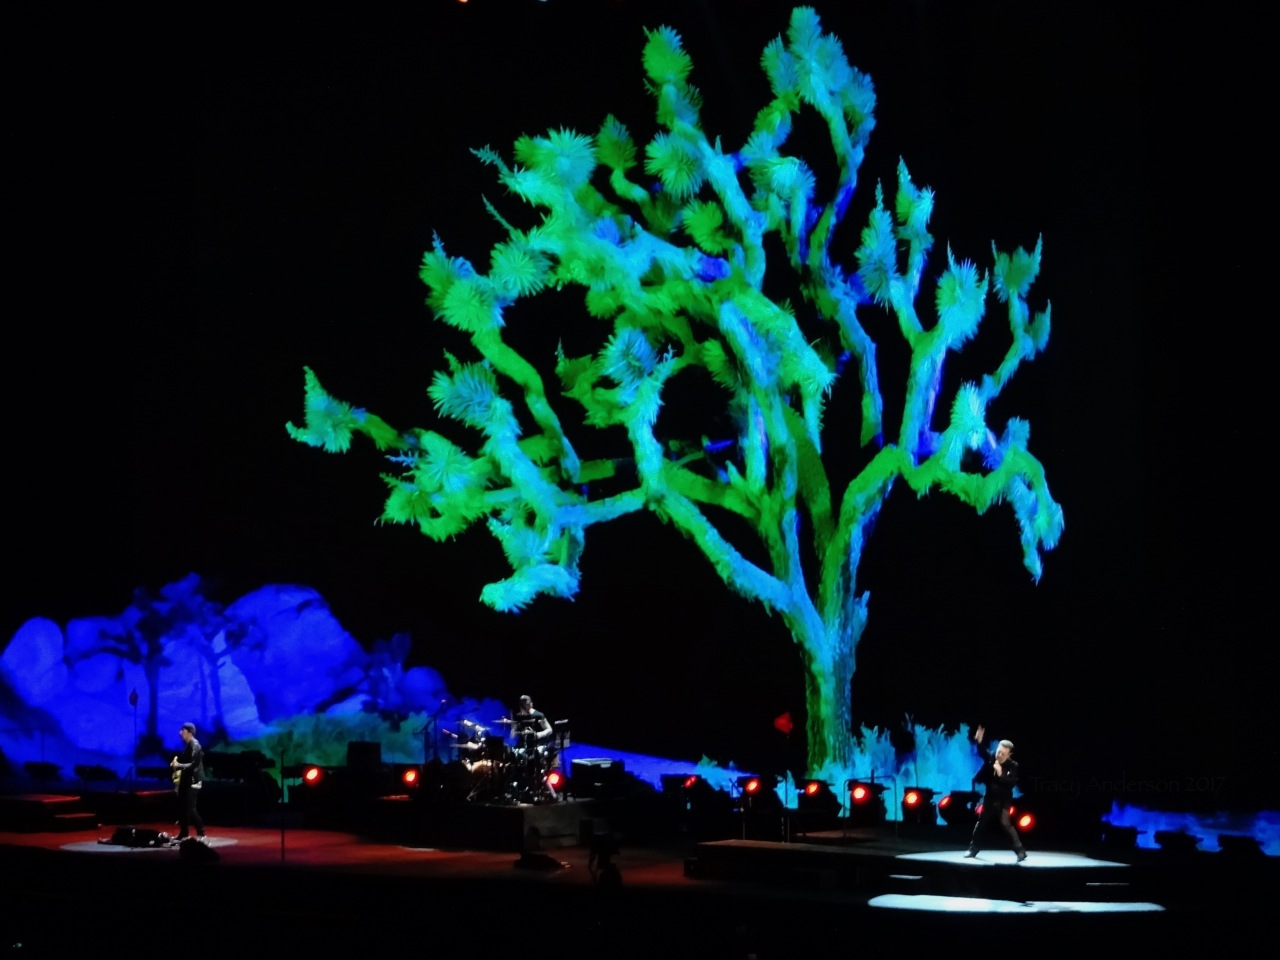 3D Tree U2 Brussels Aug 1 2017